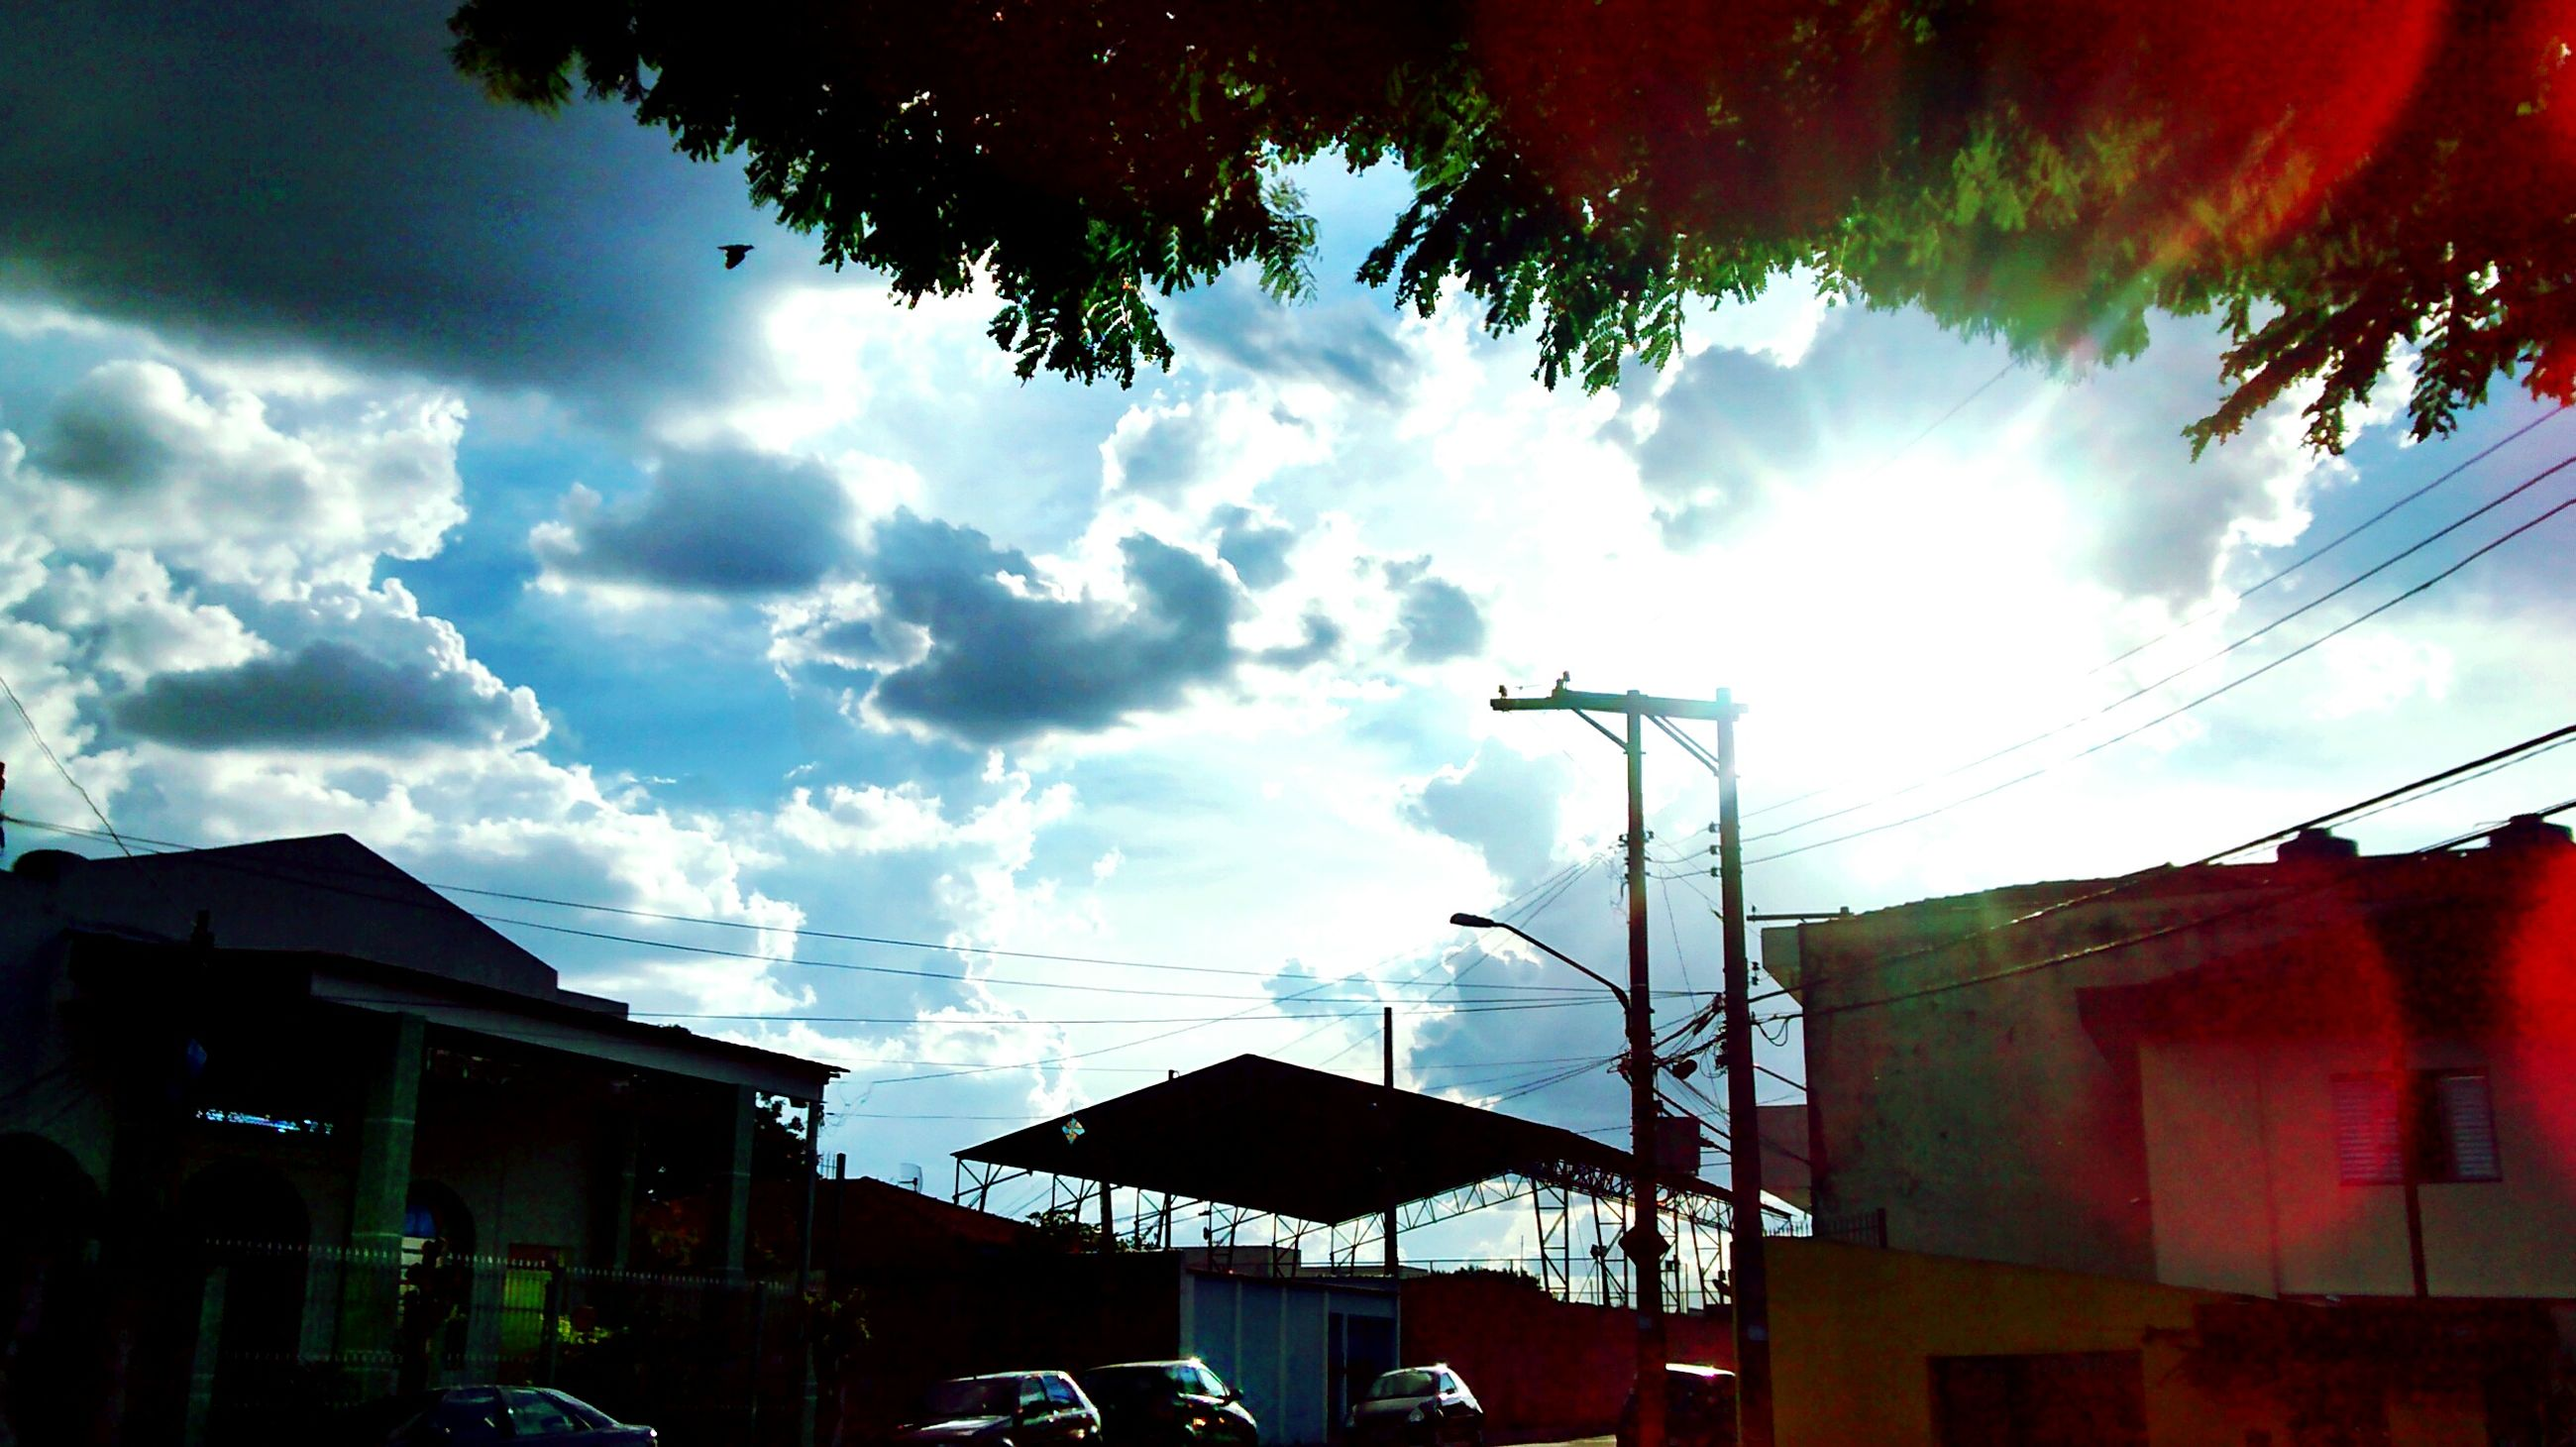 building exterior, architecture, built structure, sky, low angle view, cloud - sky, residential building, residential structure, house, cloudy, power line, building, cloud, city, sunlight, cable, outdoors, no people, residential district, day